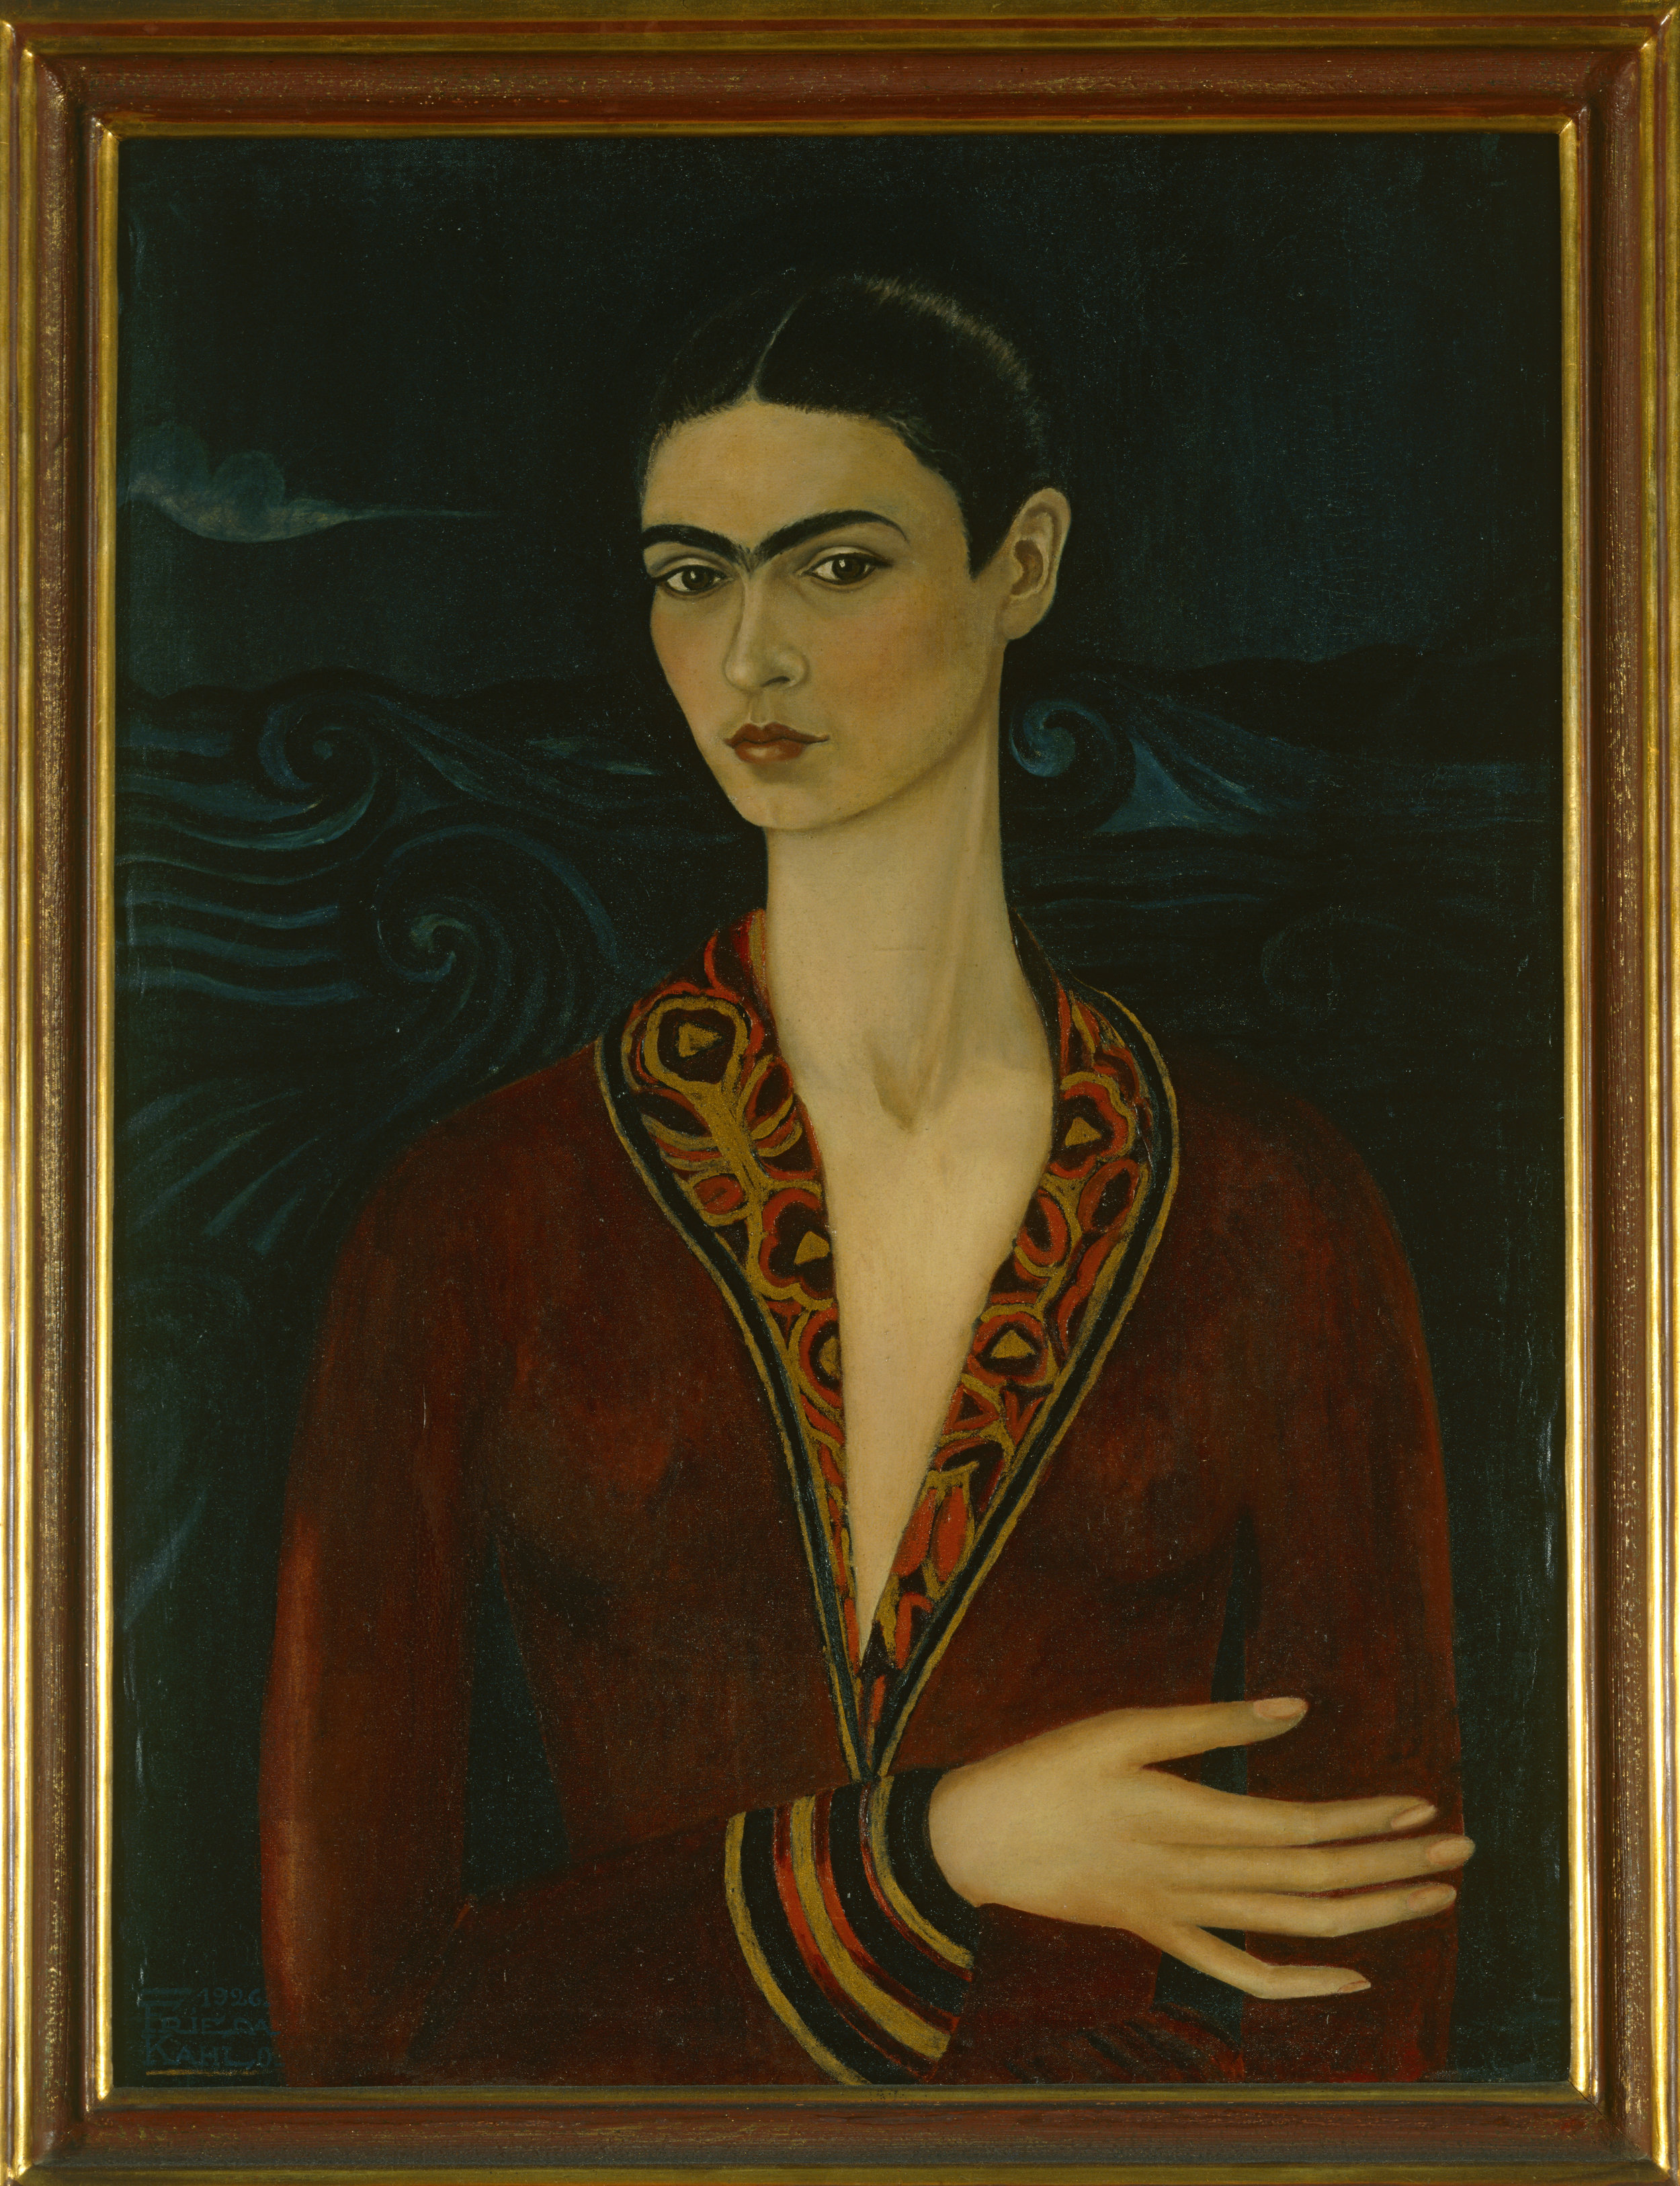 Frida Kahlo ,  Self-Portrait Wearing a Velvet Dress , 1926 © 2018 Banco de México Diego Rivera Frida Kahlo Museums Trust, Mexico, D.F. / Artists Rights Society (ARS), New York